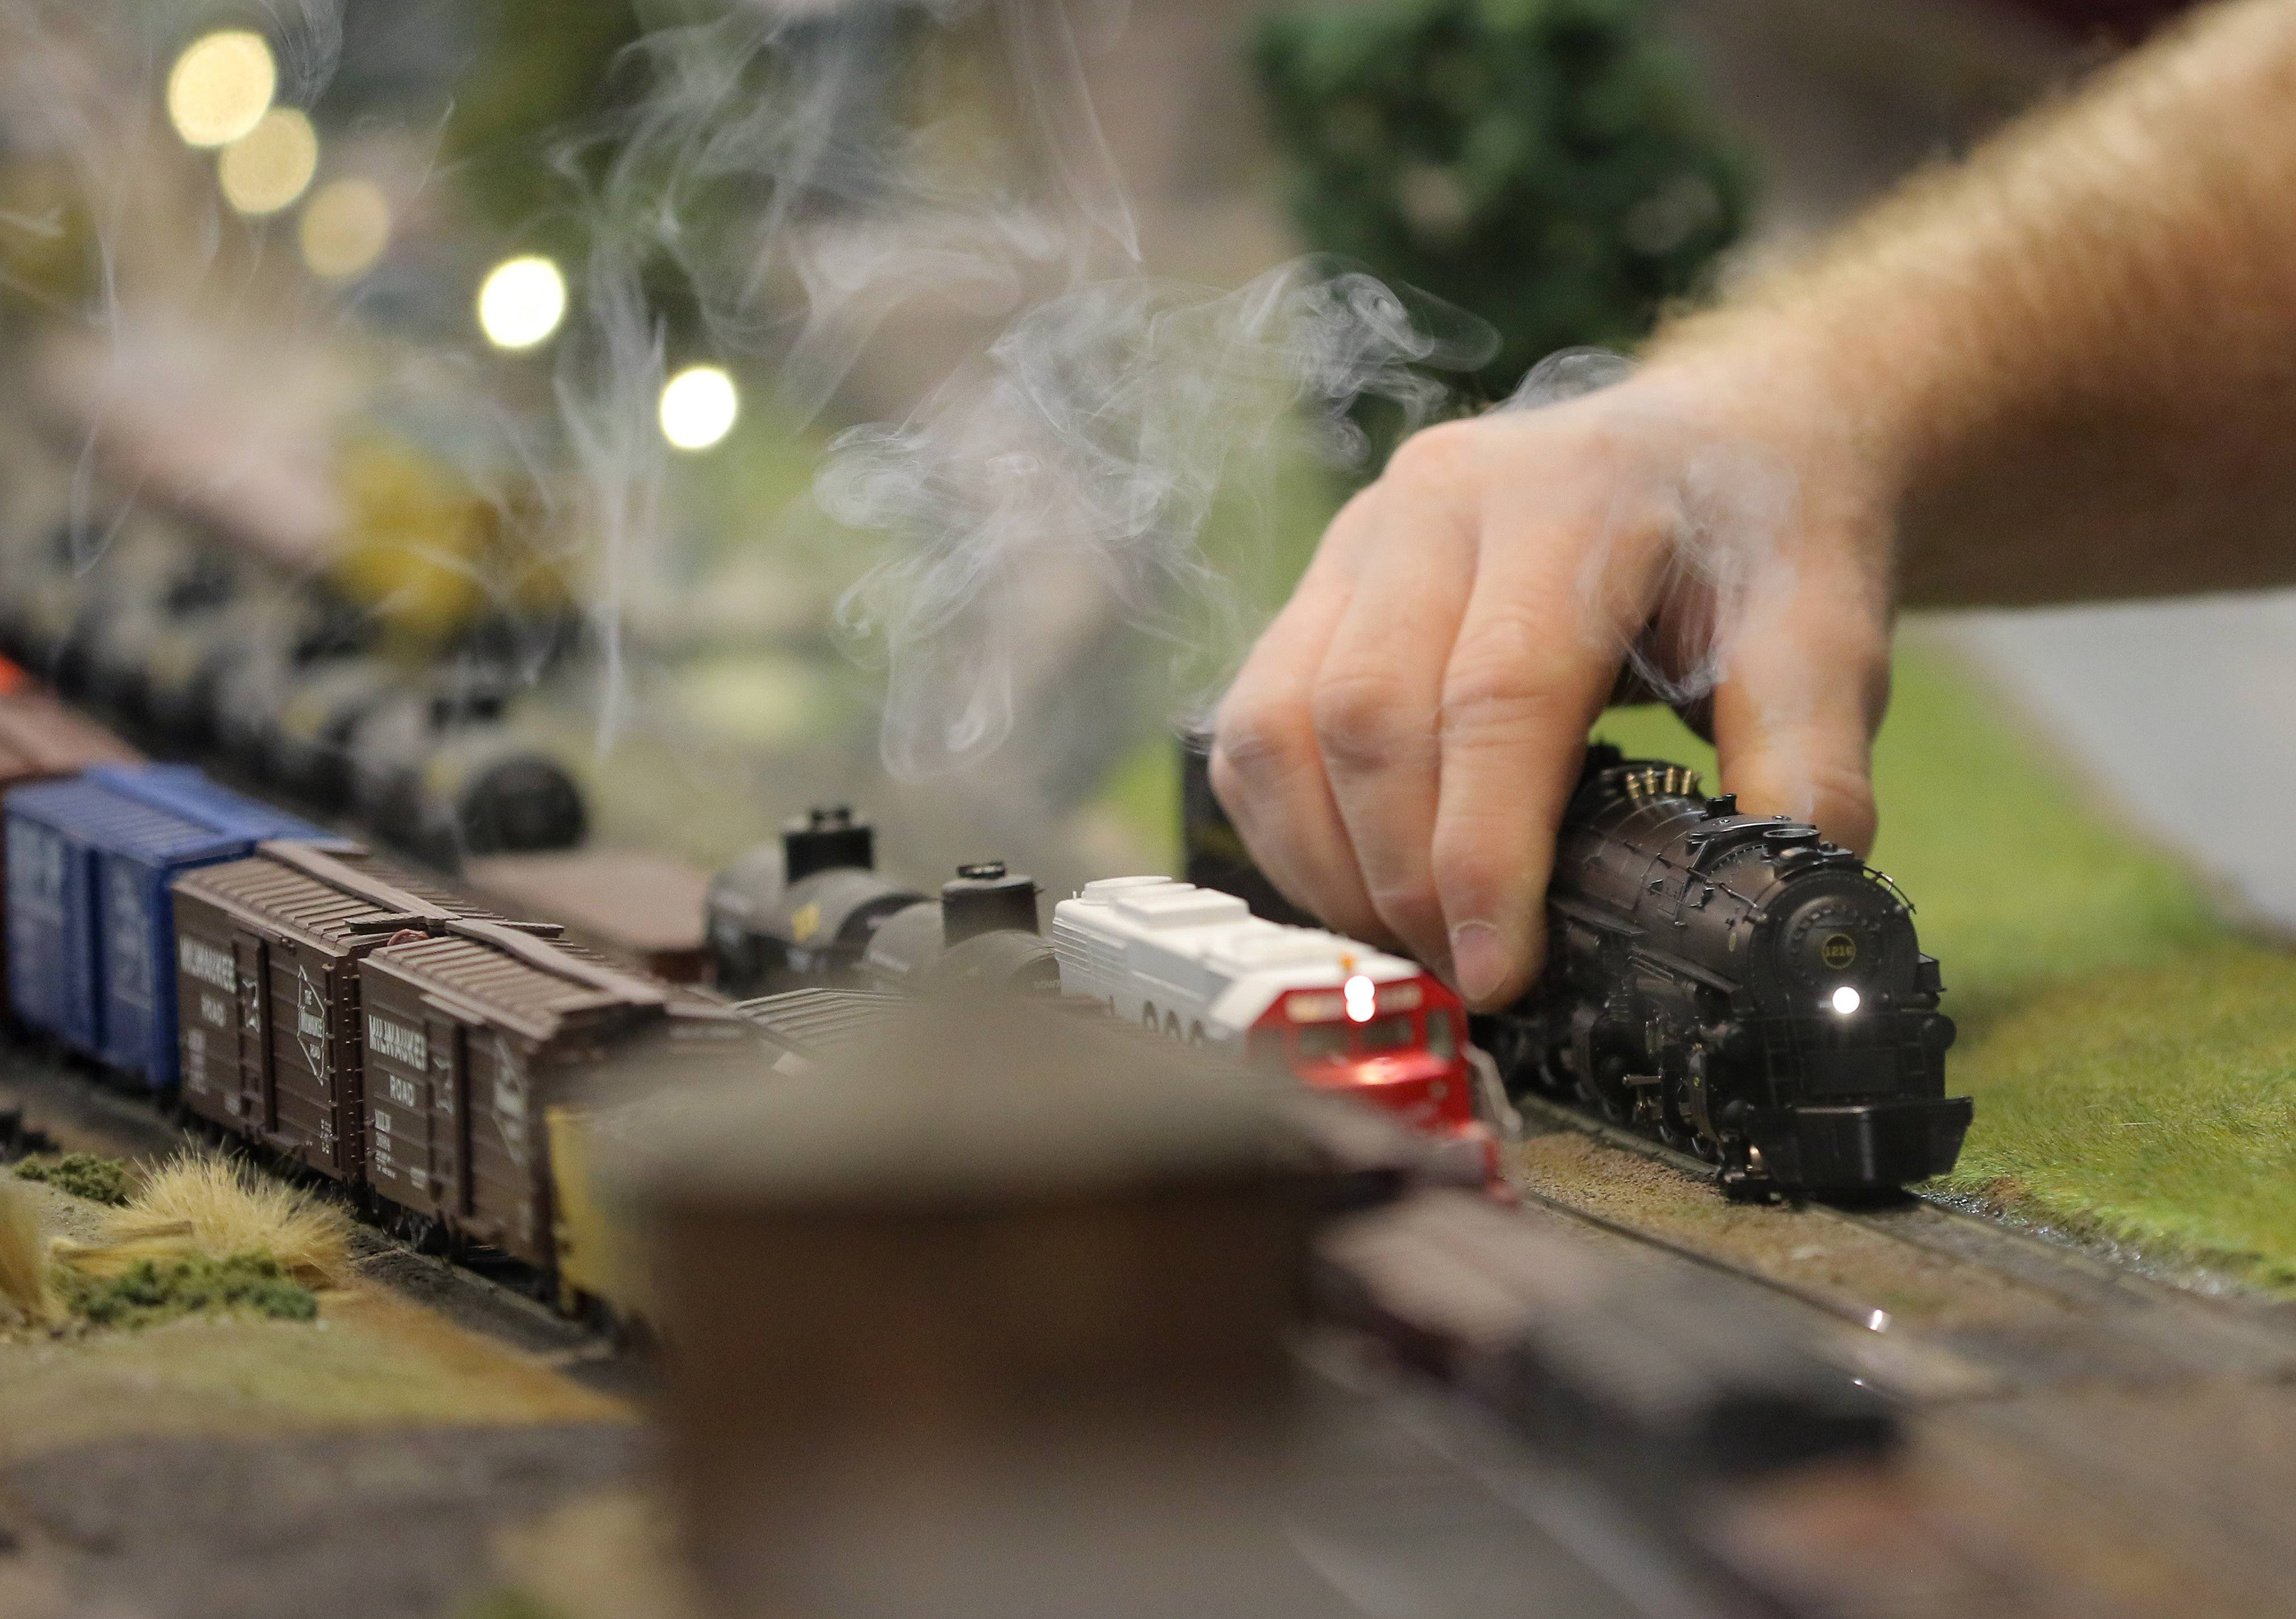 Rod Issacson of Wauconda adjusts his locomotive on the rails at the Lake County Model Railroad Club in Wauconda.